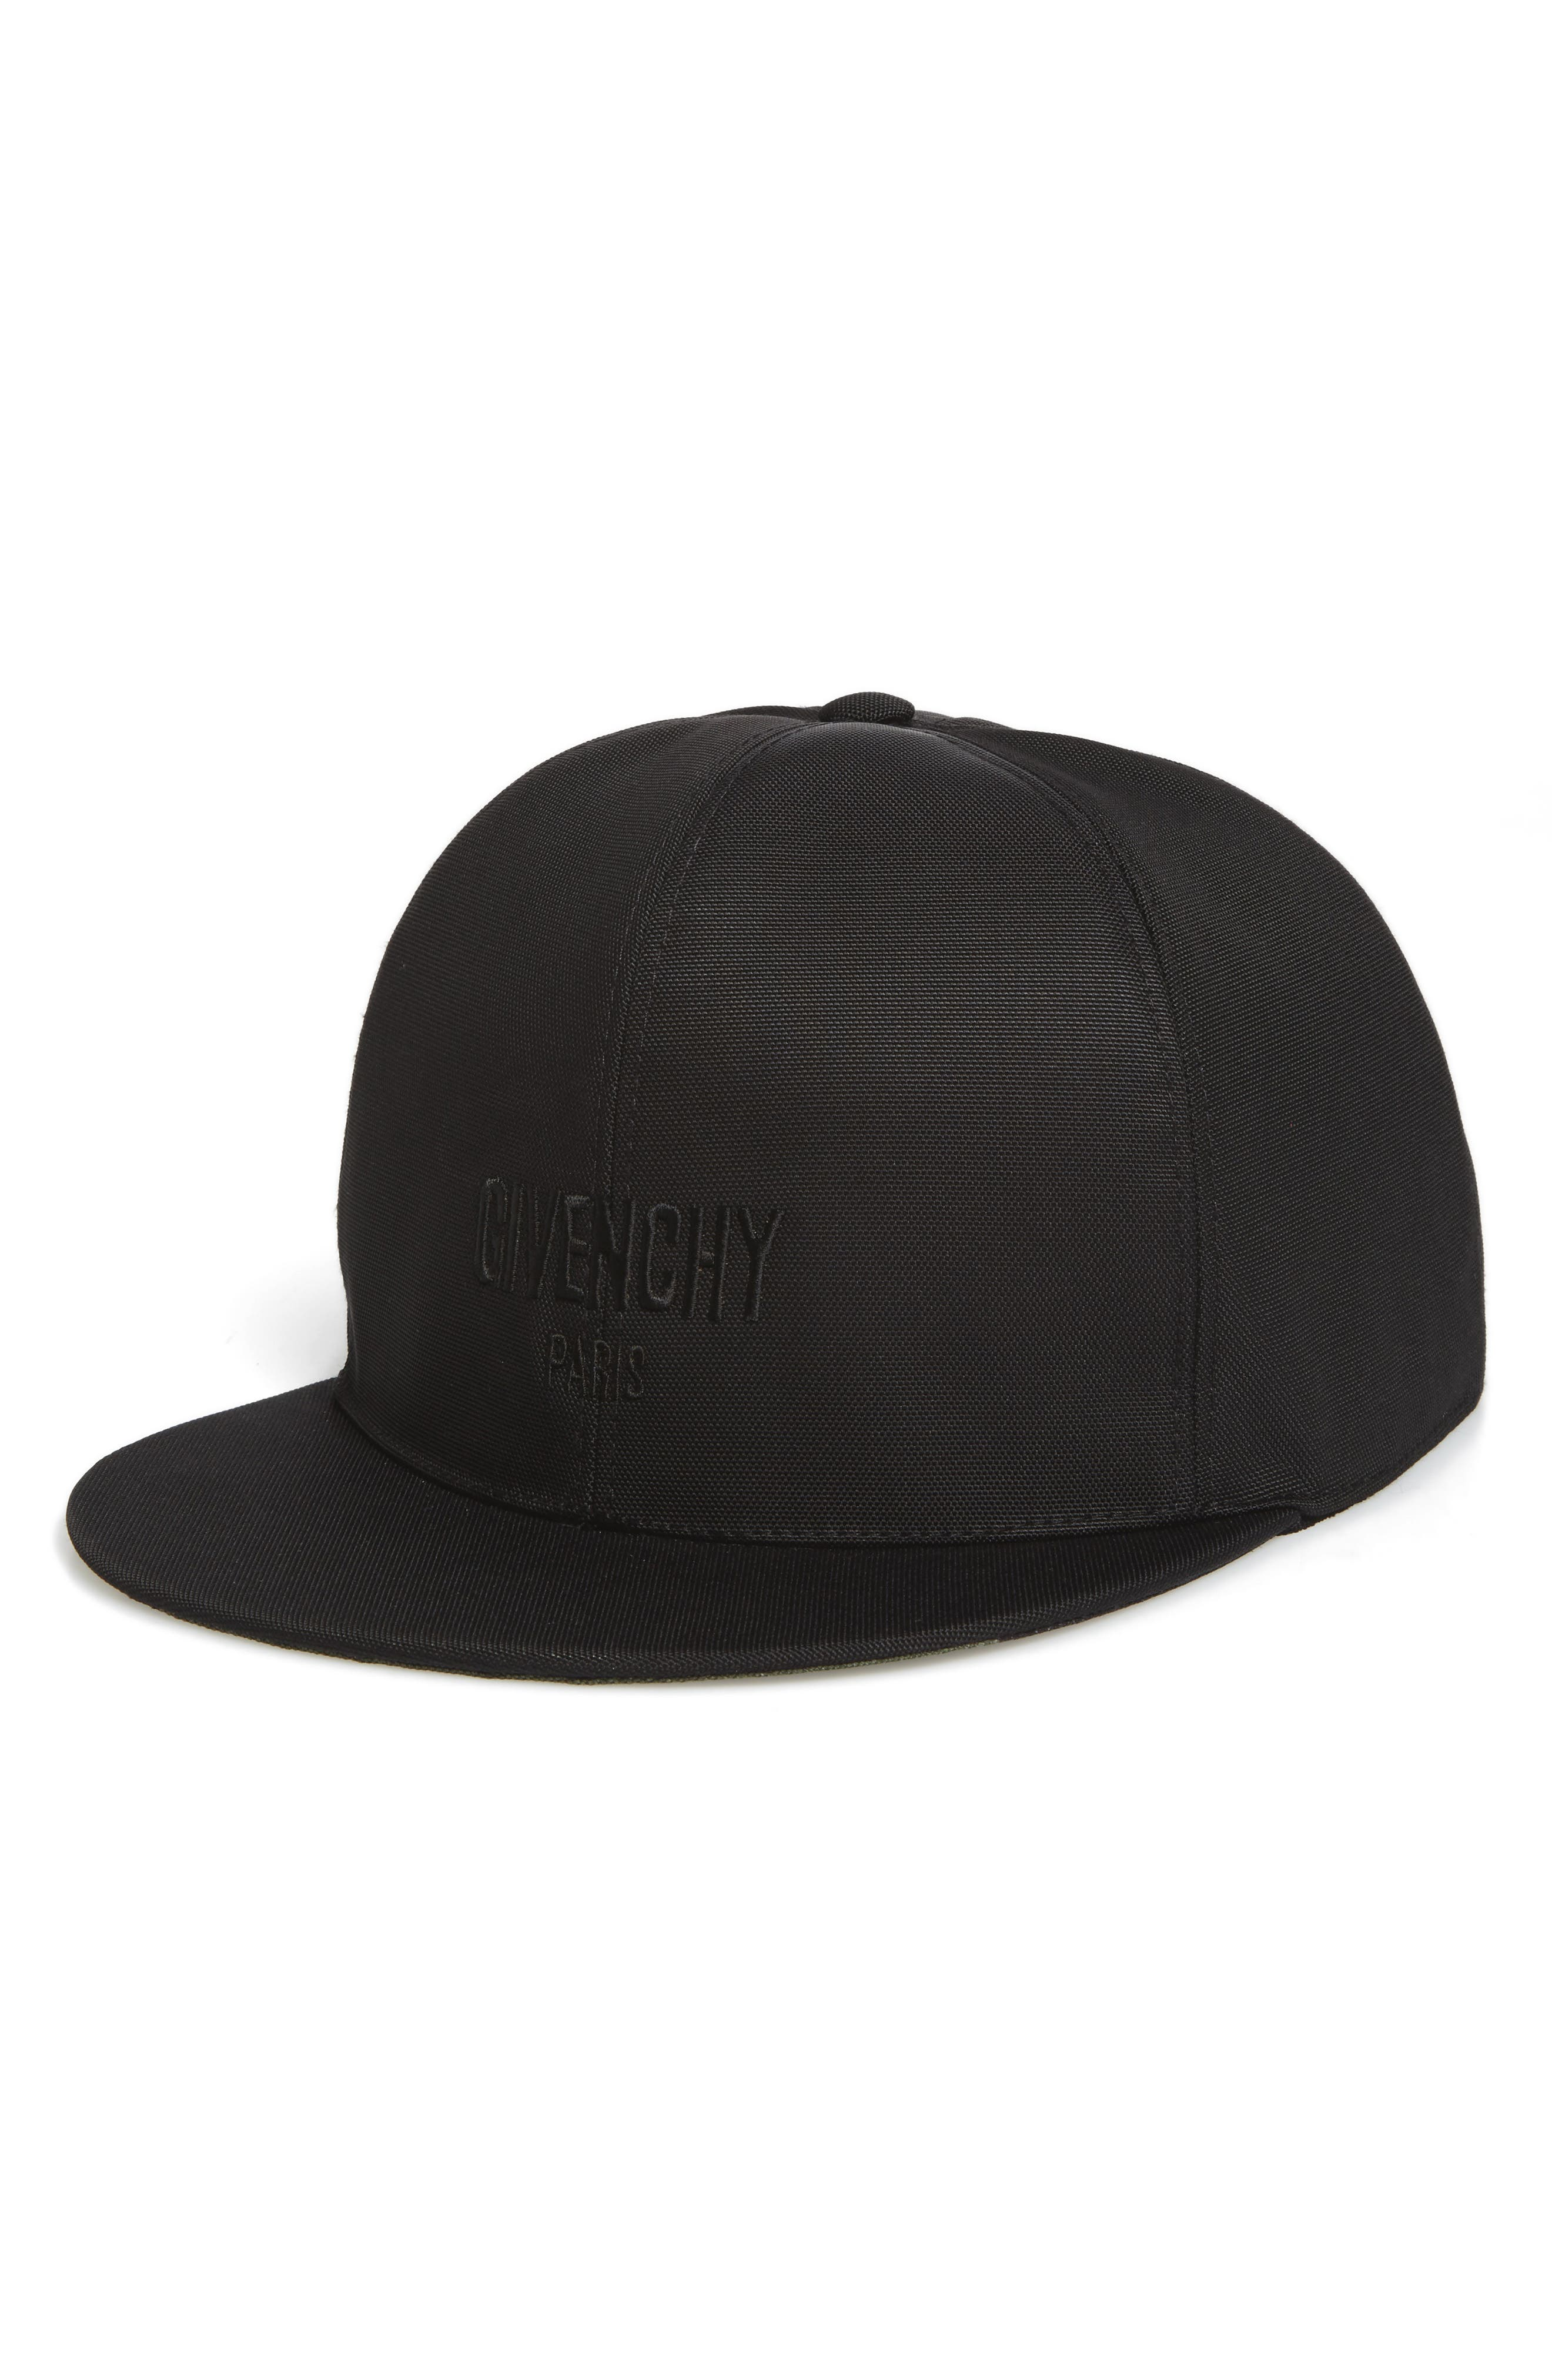 Embroidered Baseball Cap,                         Main,                         color,